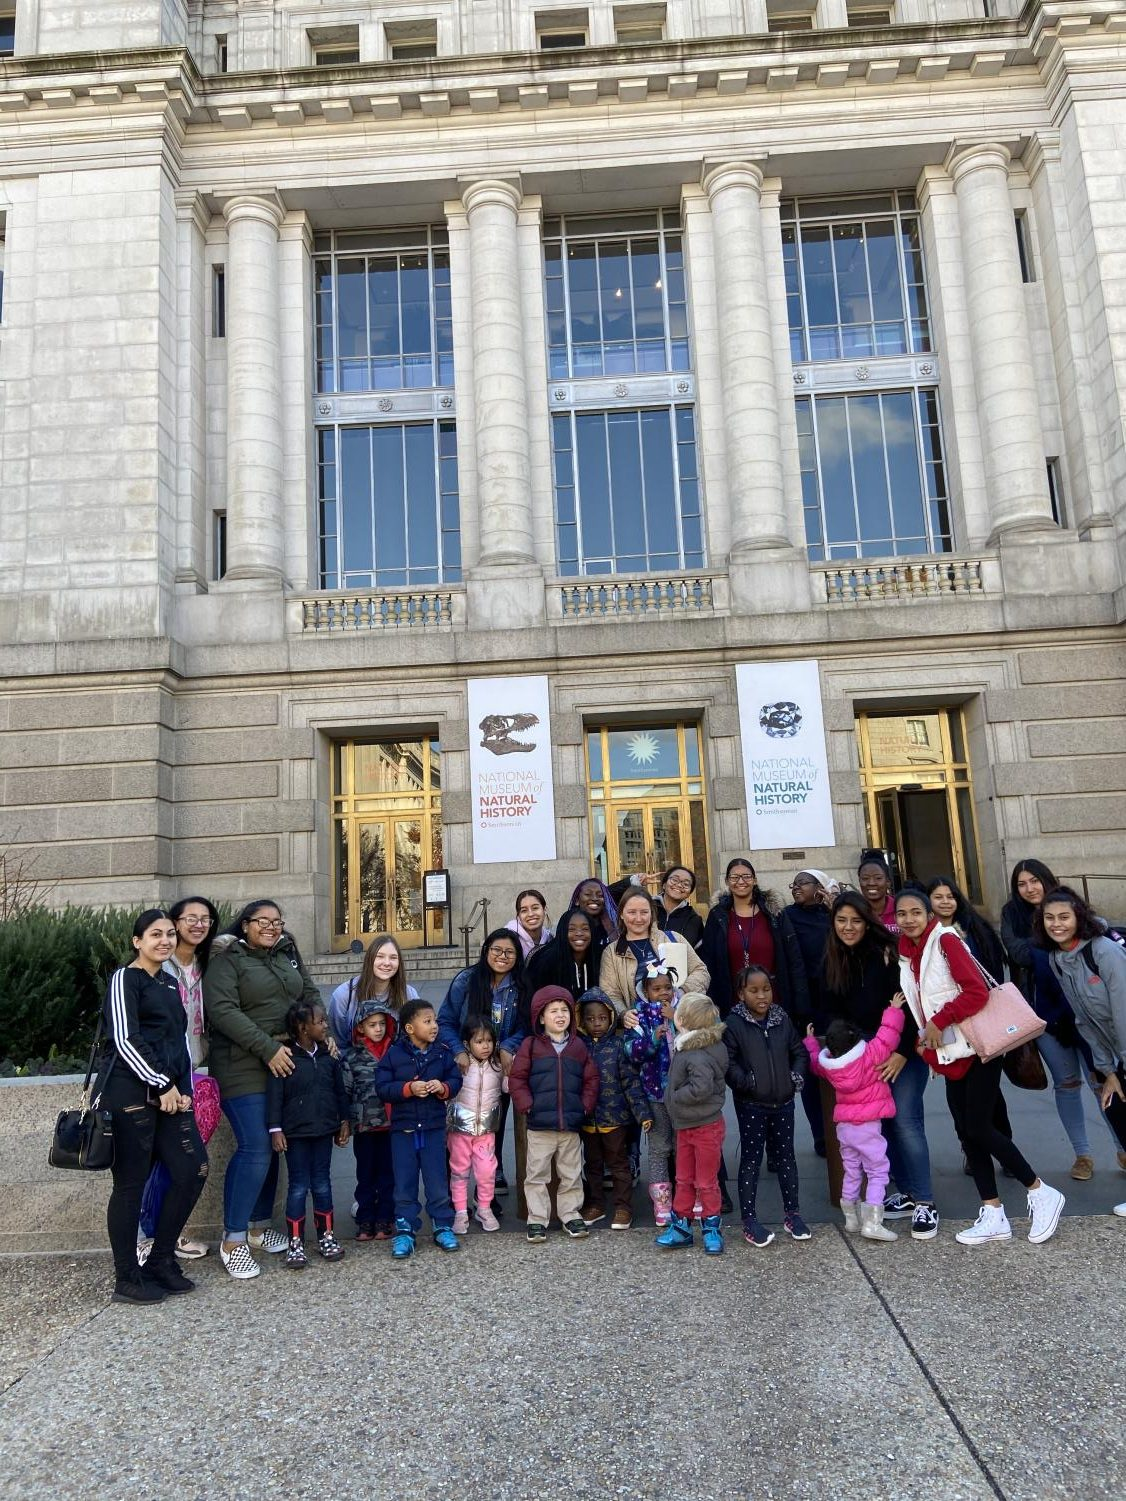 Child Development preschoolers, high school students and teacher Melissa Cloyd outside the Smithsonian National Museum of Natural History.